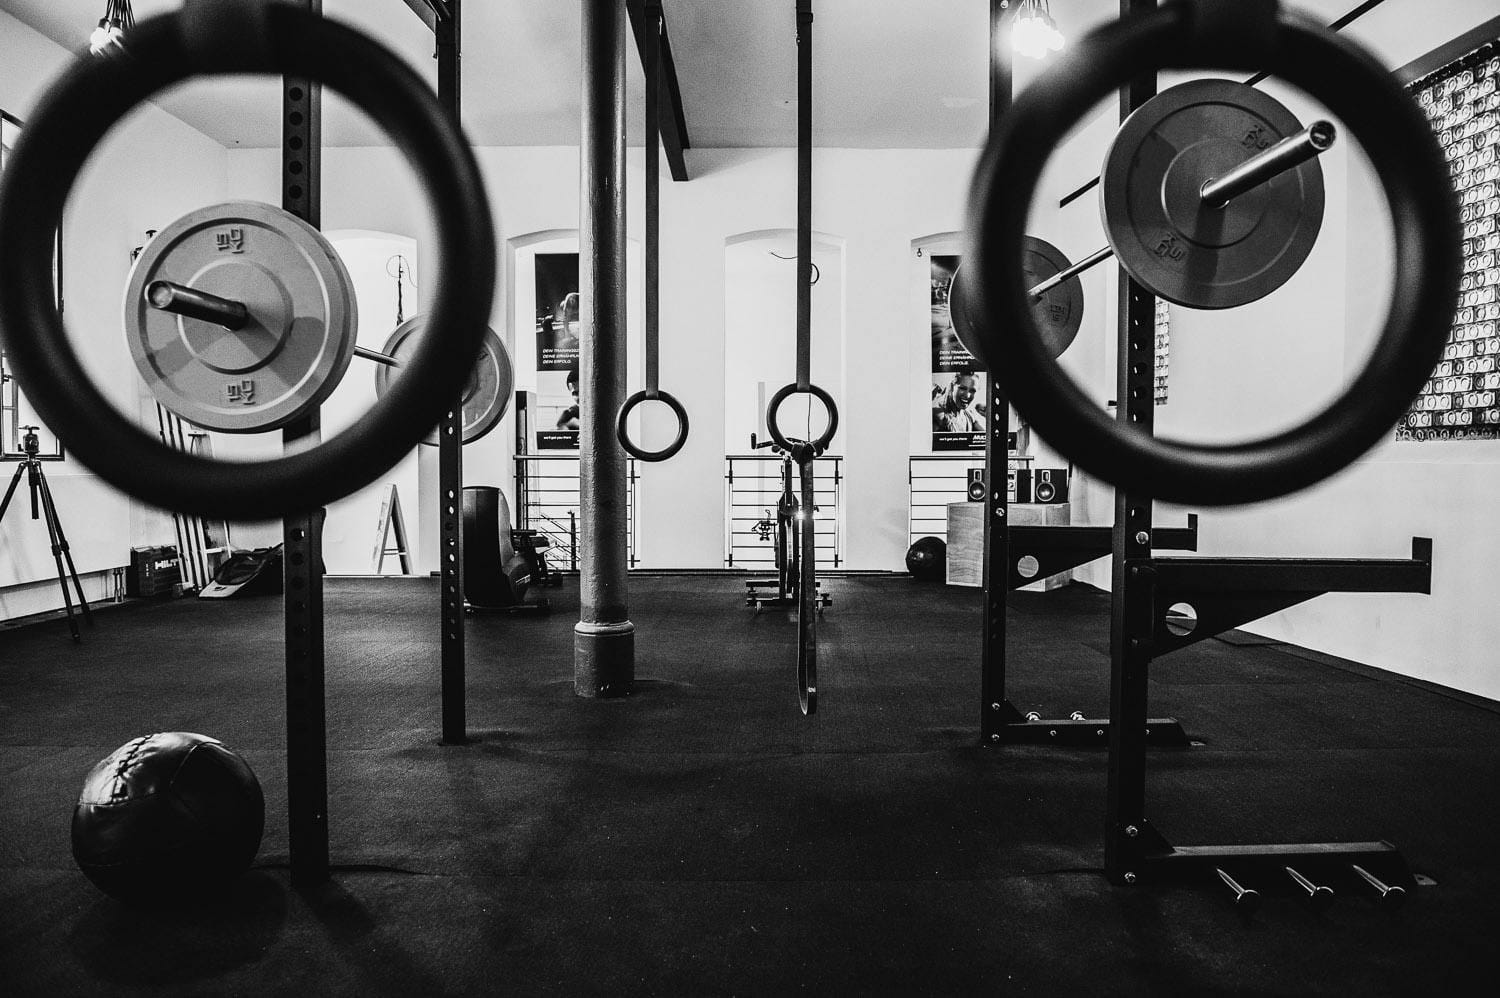 Build Your own Garage Gym: Must-Have Equipment